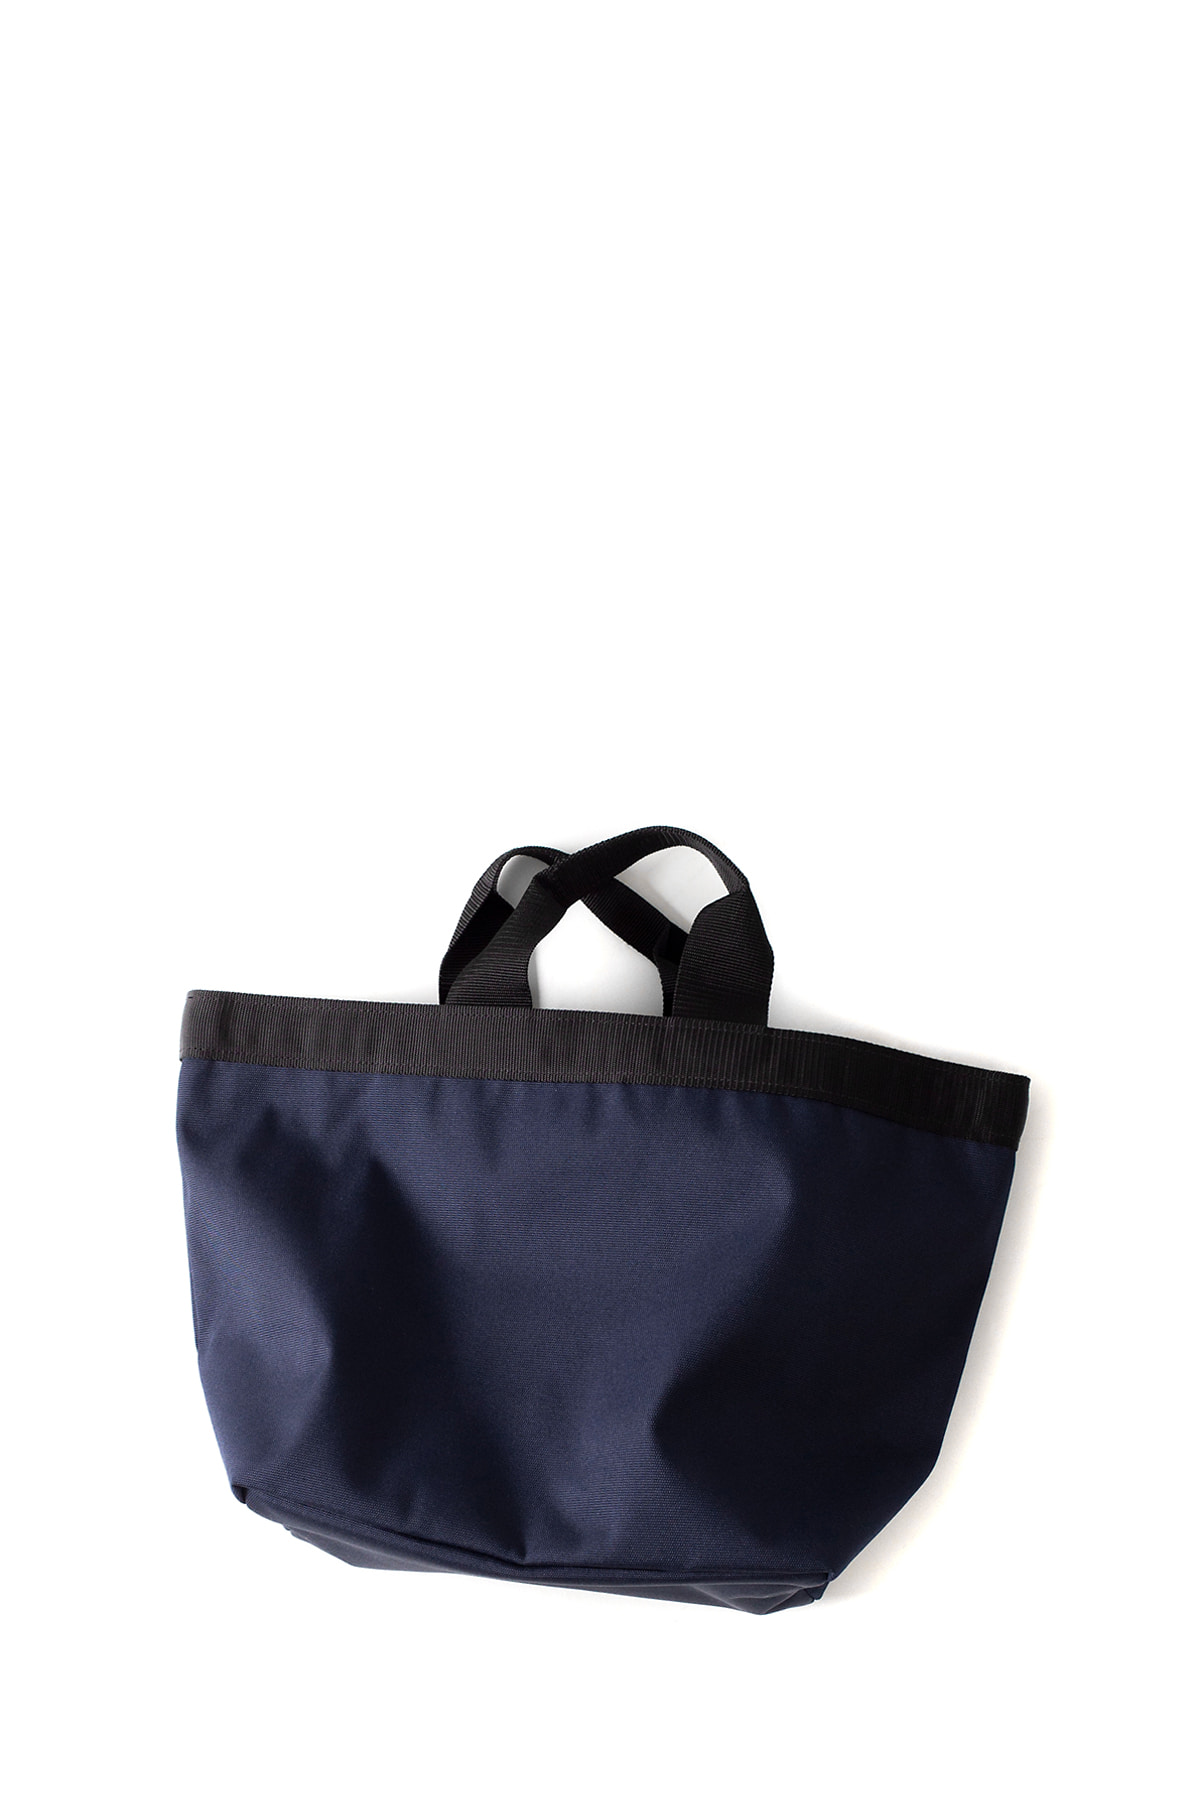 RINEN : Eco Made Canvas Tote Bag (Navy)